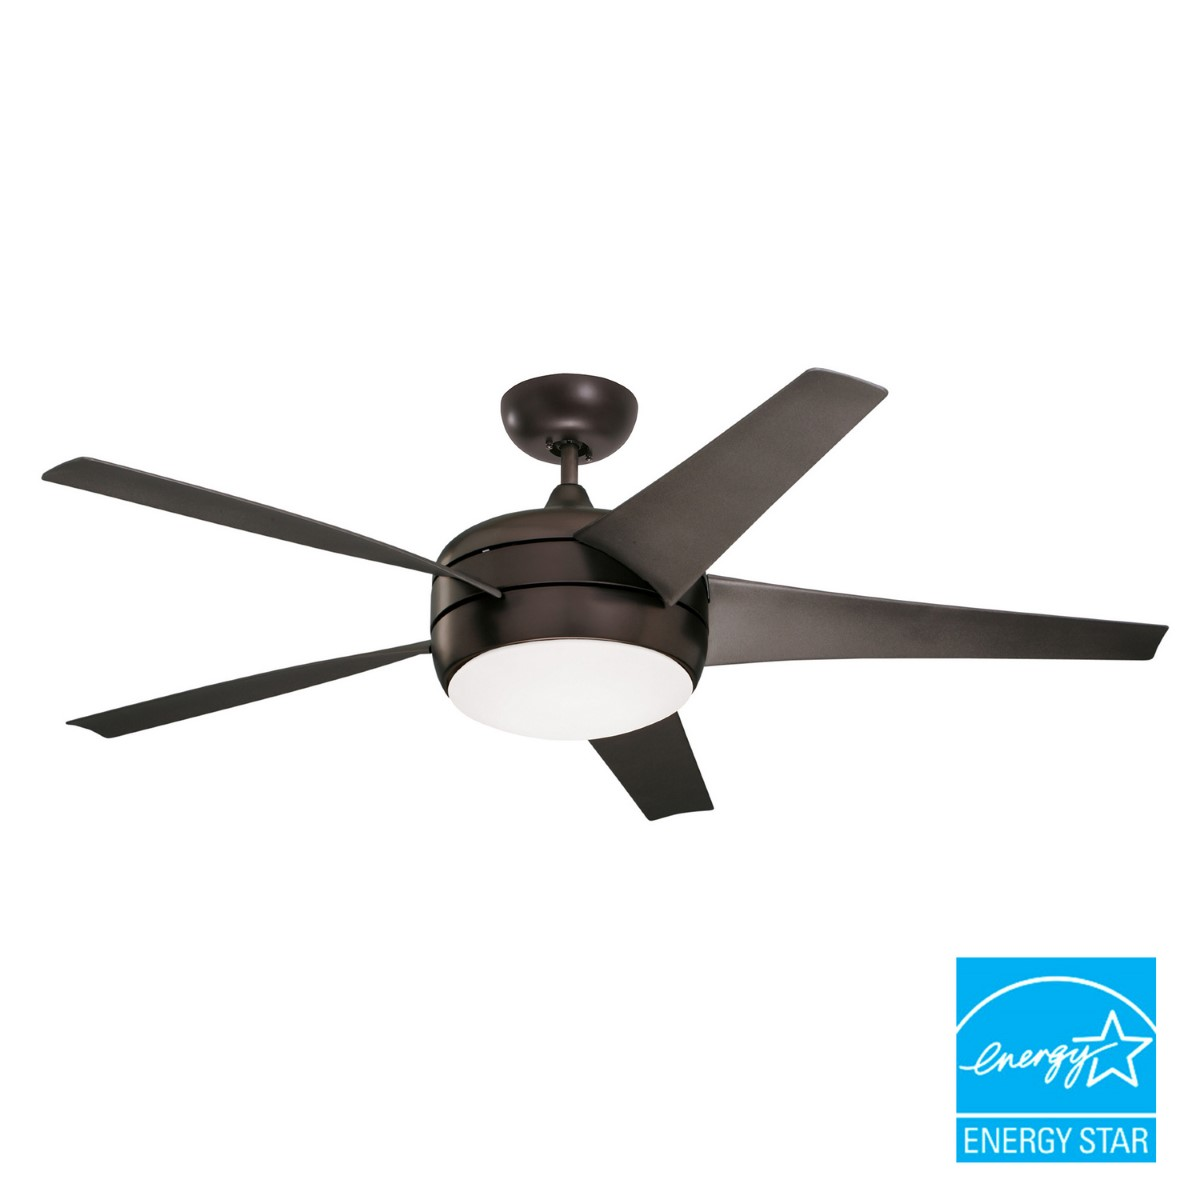 Emerson Midway Eco Bronze Ceiling Fan